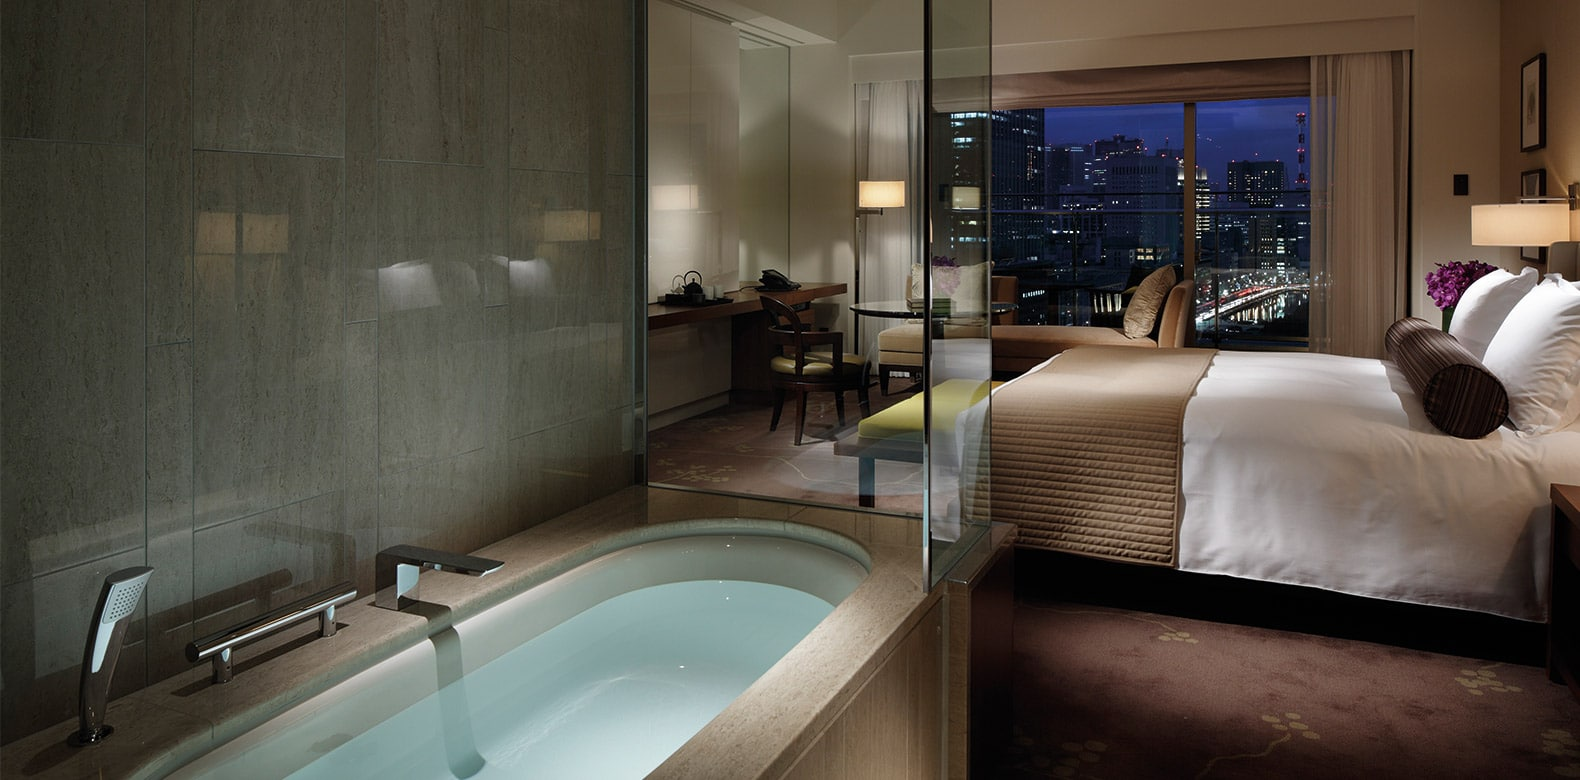 Palace 5 star Hotel Tokyo Deluxe Room Bathroom